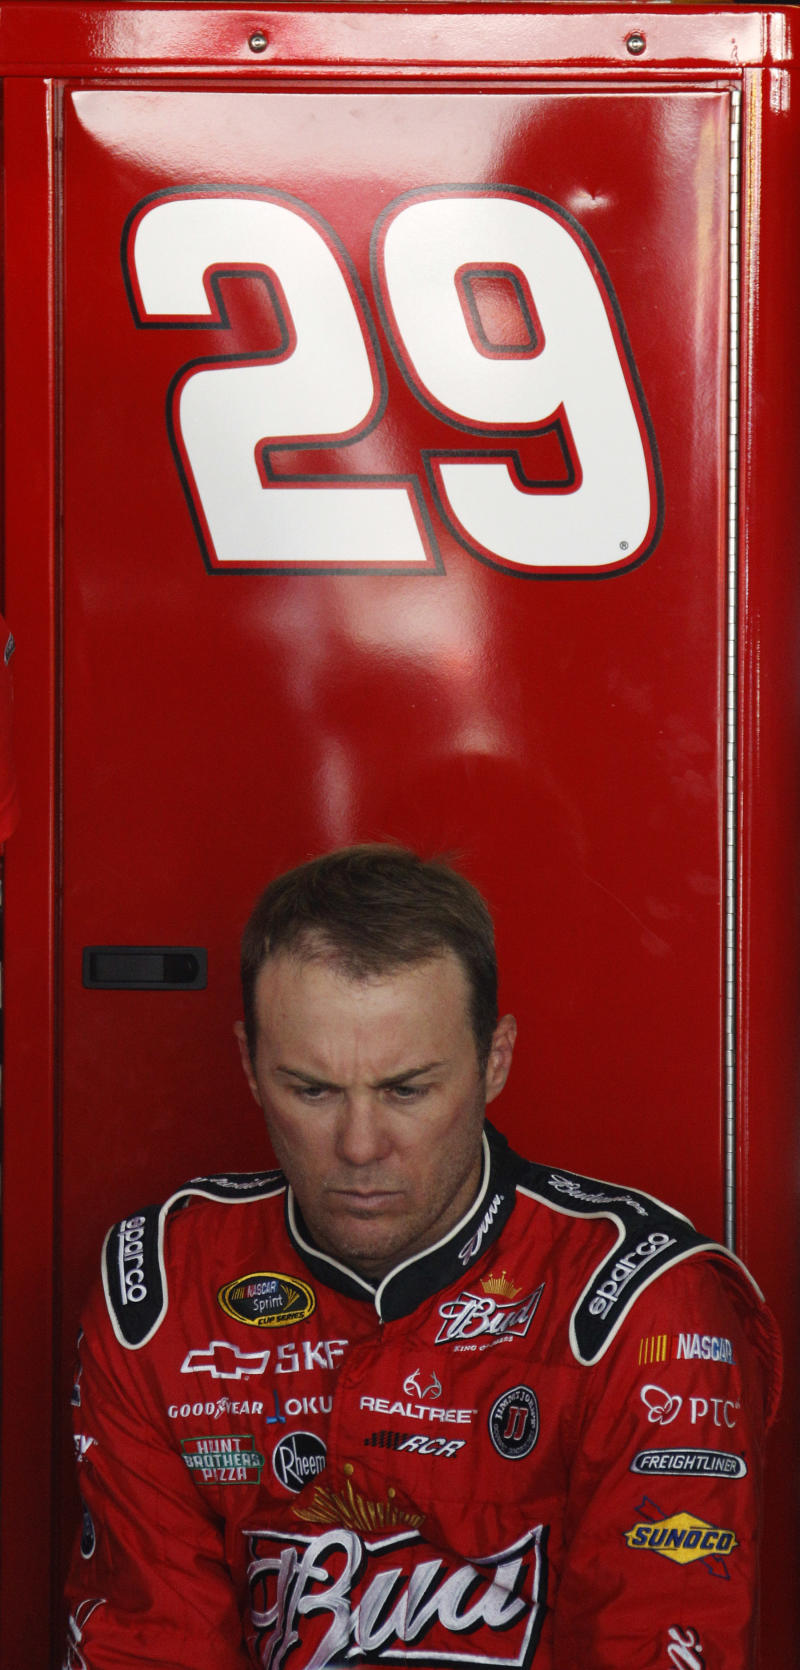 Driver Kevin Harvick waits in the garage as his car is worked on during a practice session for Sunday's NASCAR Sprint Cup series FedEx 400 auto race, Friday, May 13, 2011, in Dover, Del. Harvick and Kyle Busch are on probation and will have to play nice this weekend if they want to avoid further punishment from NASCAR. (AP Photo/Matt Slocum)